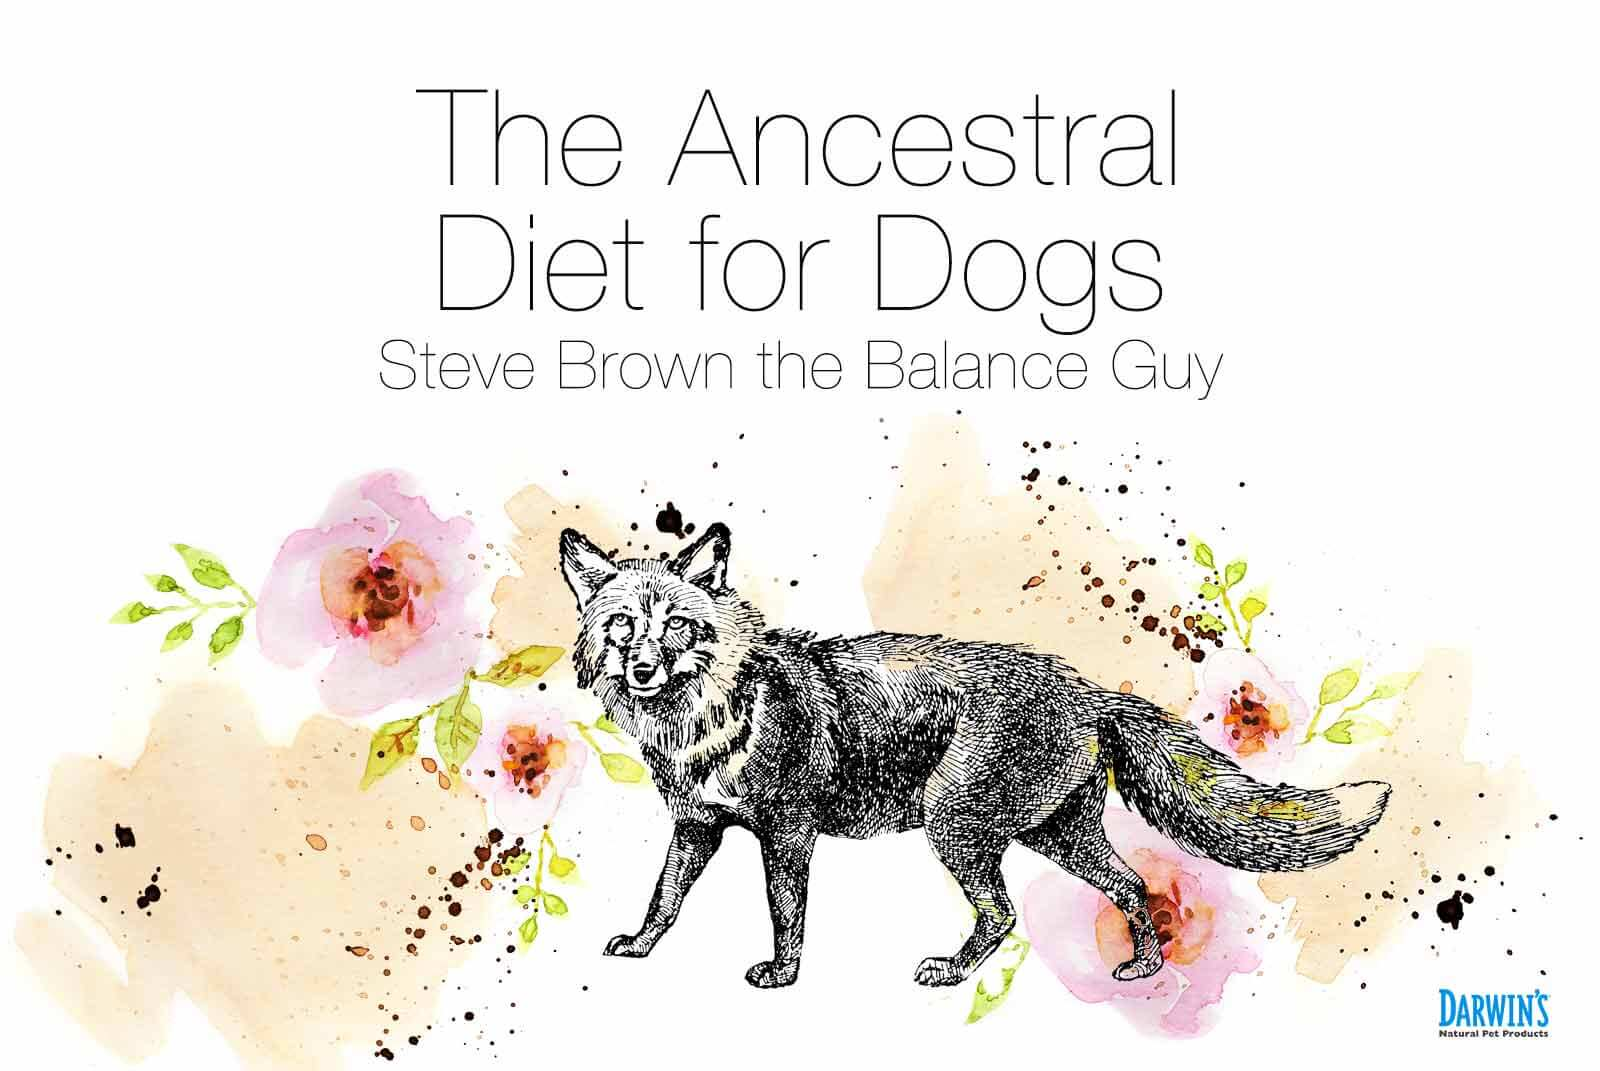 The Ancestral Diet for Dogs